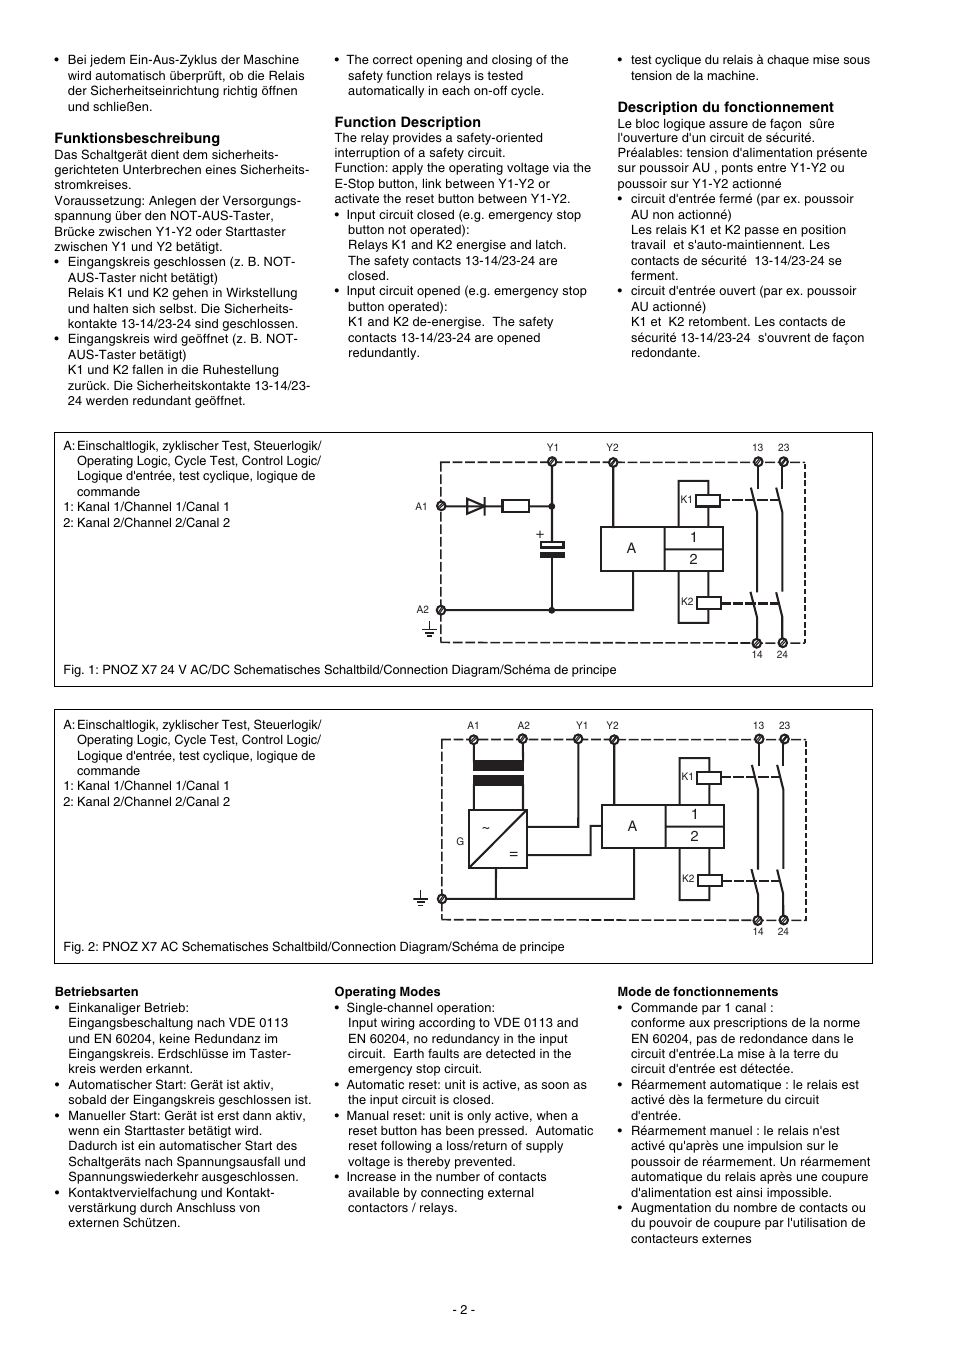 pilz pnoz x3 wiring diagram with Pilz Pnoz X7 Wiring Diagram on 6174961 in addition PILZ PNOZ X3 Ord Nr 774318 additionally 120v Light Switch Electrical Wiring Diagrams besides CES AR C01 AH SA also Pnoz X1 Safety Relay 24vac Dc 3no 1nc Pnoz X1 24vac Dc 239 1033.